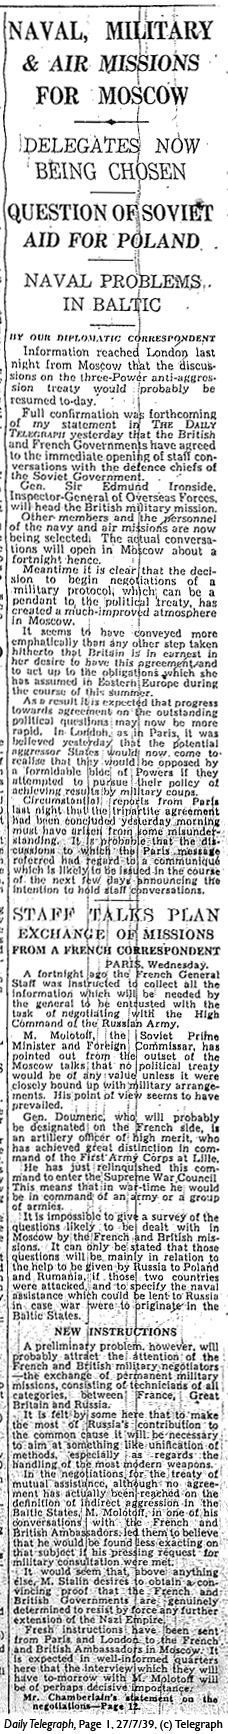 Daily Telegraph 27-7-39 Page 1